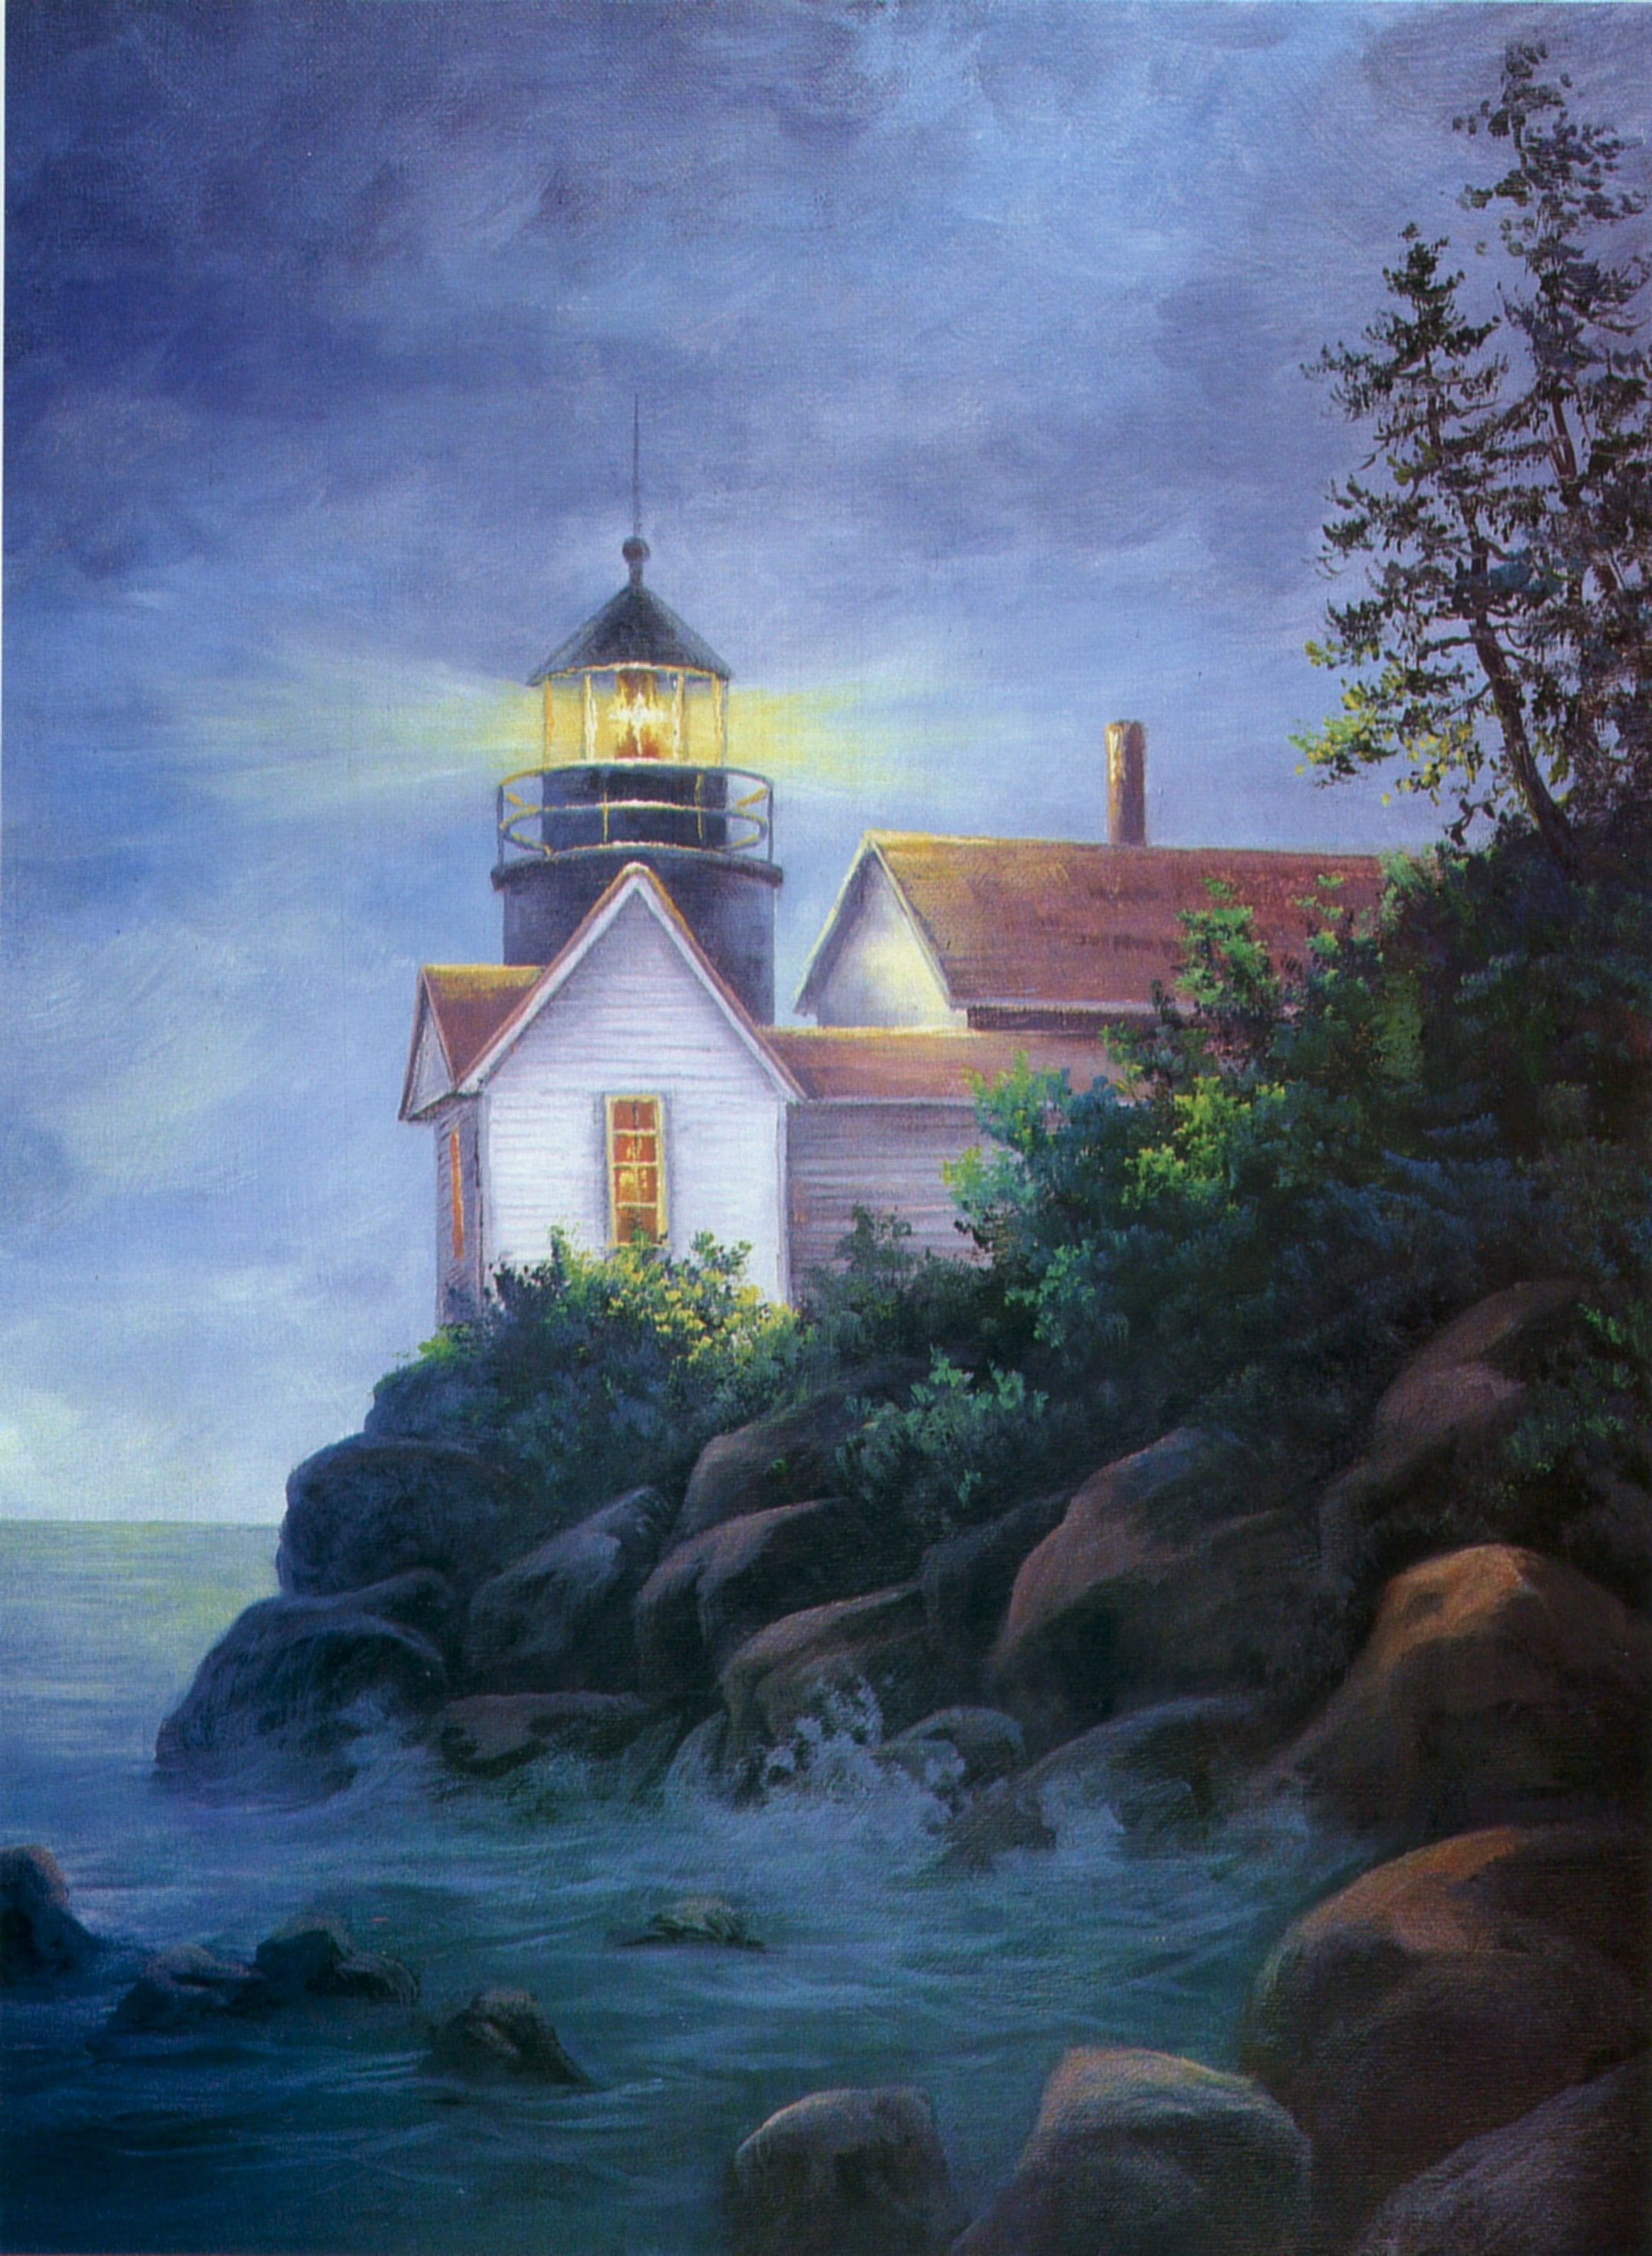 Guiding Light by Dorthy Dent